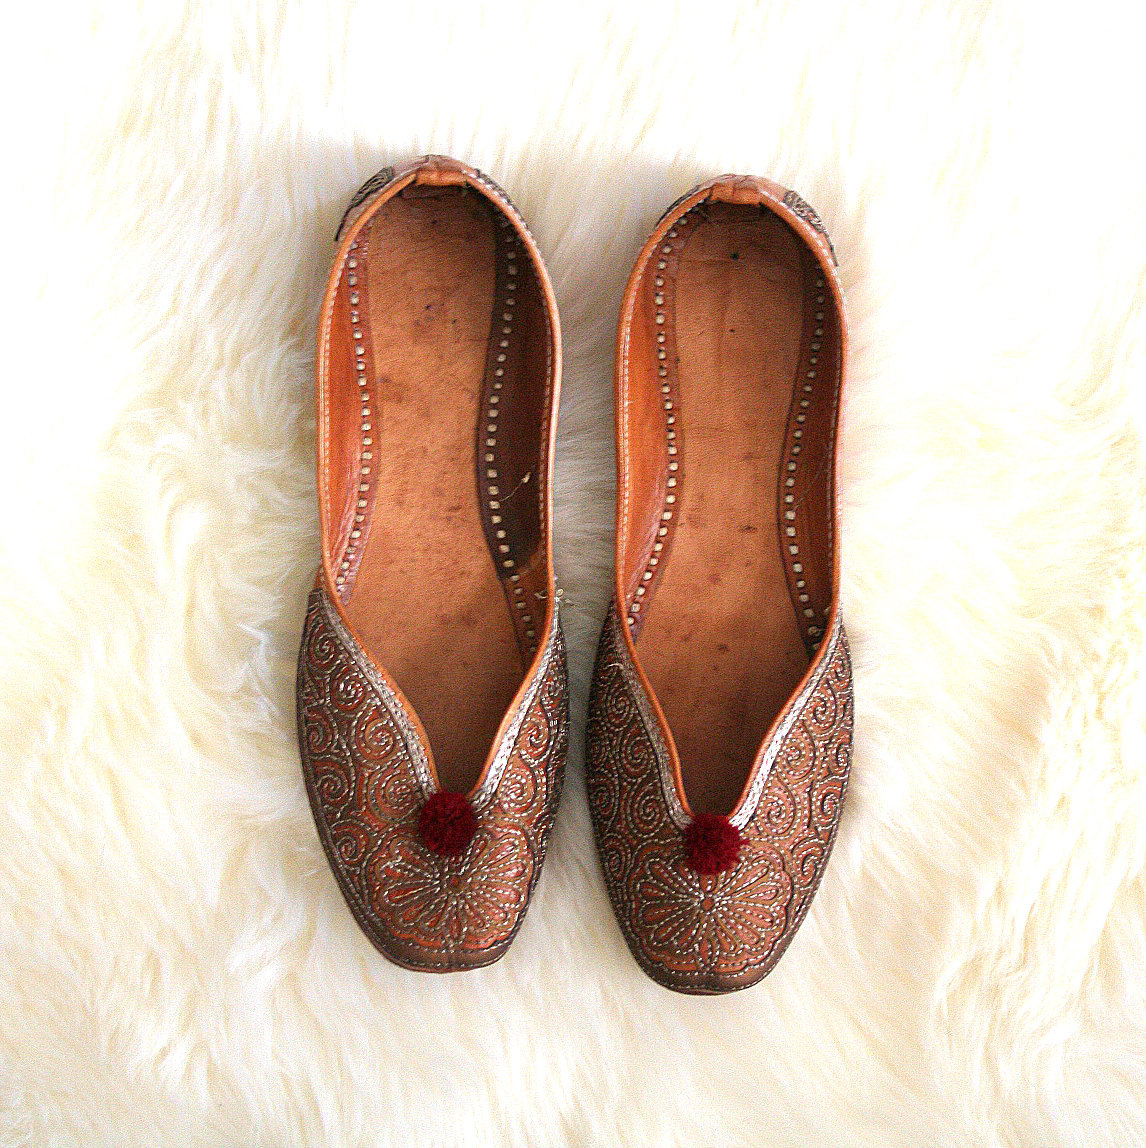 Vintage MOROCCAN SLIPPERS Embroidered Flats BOHEMIAN Tan